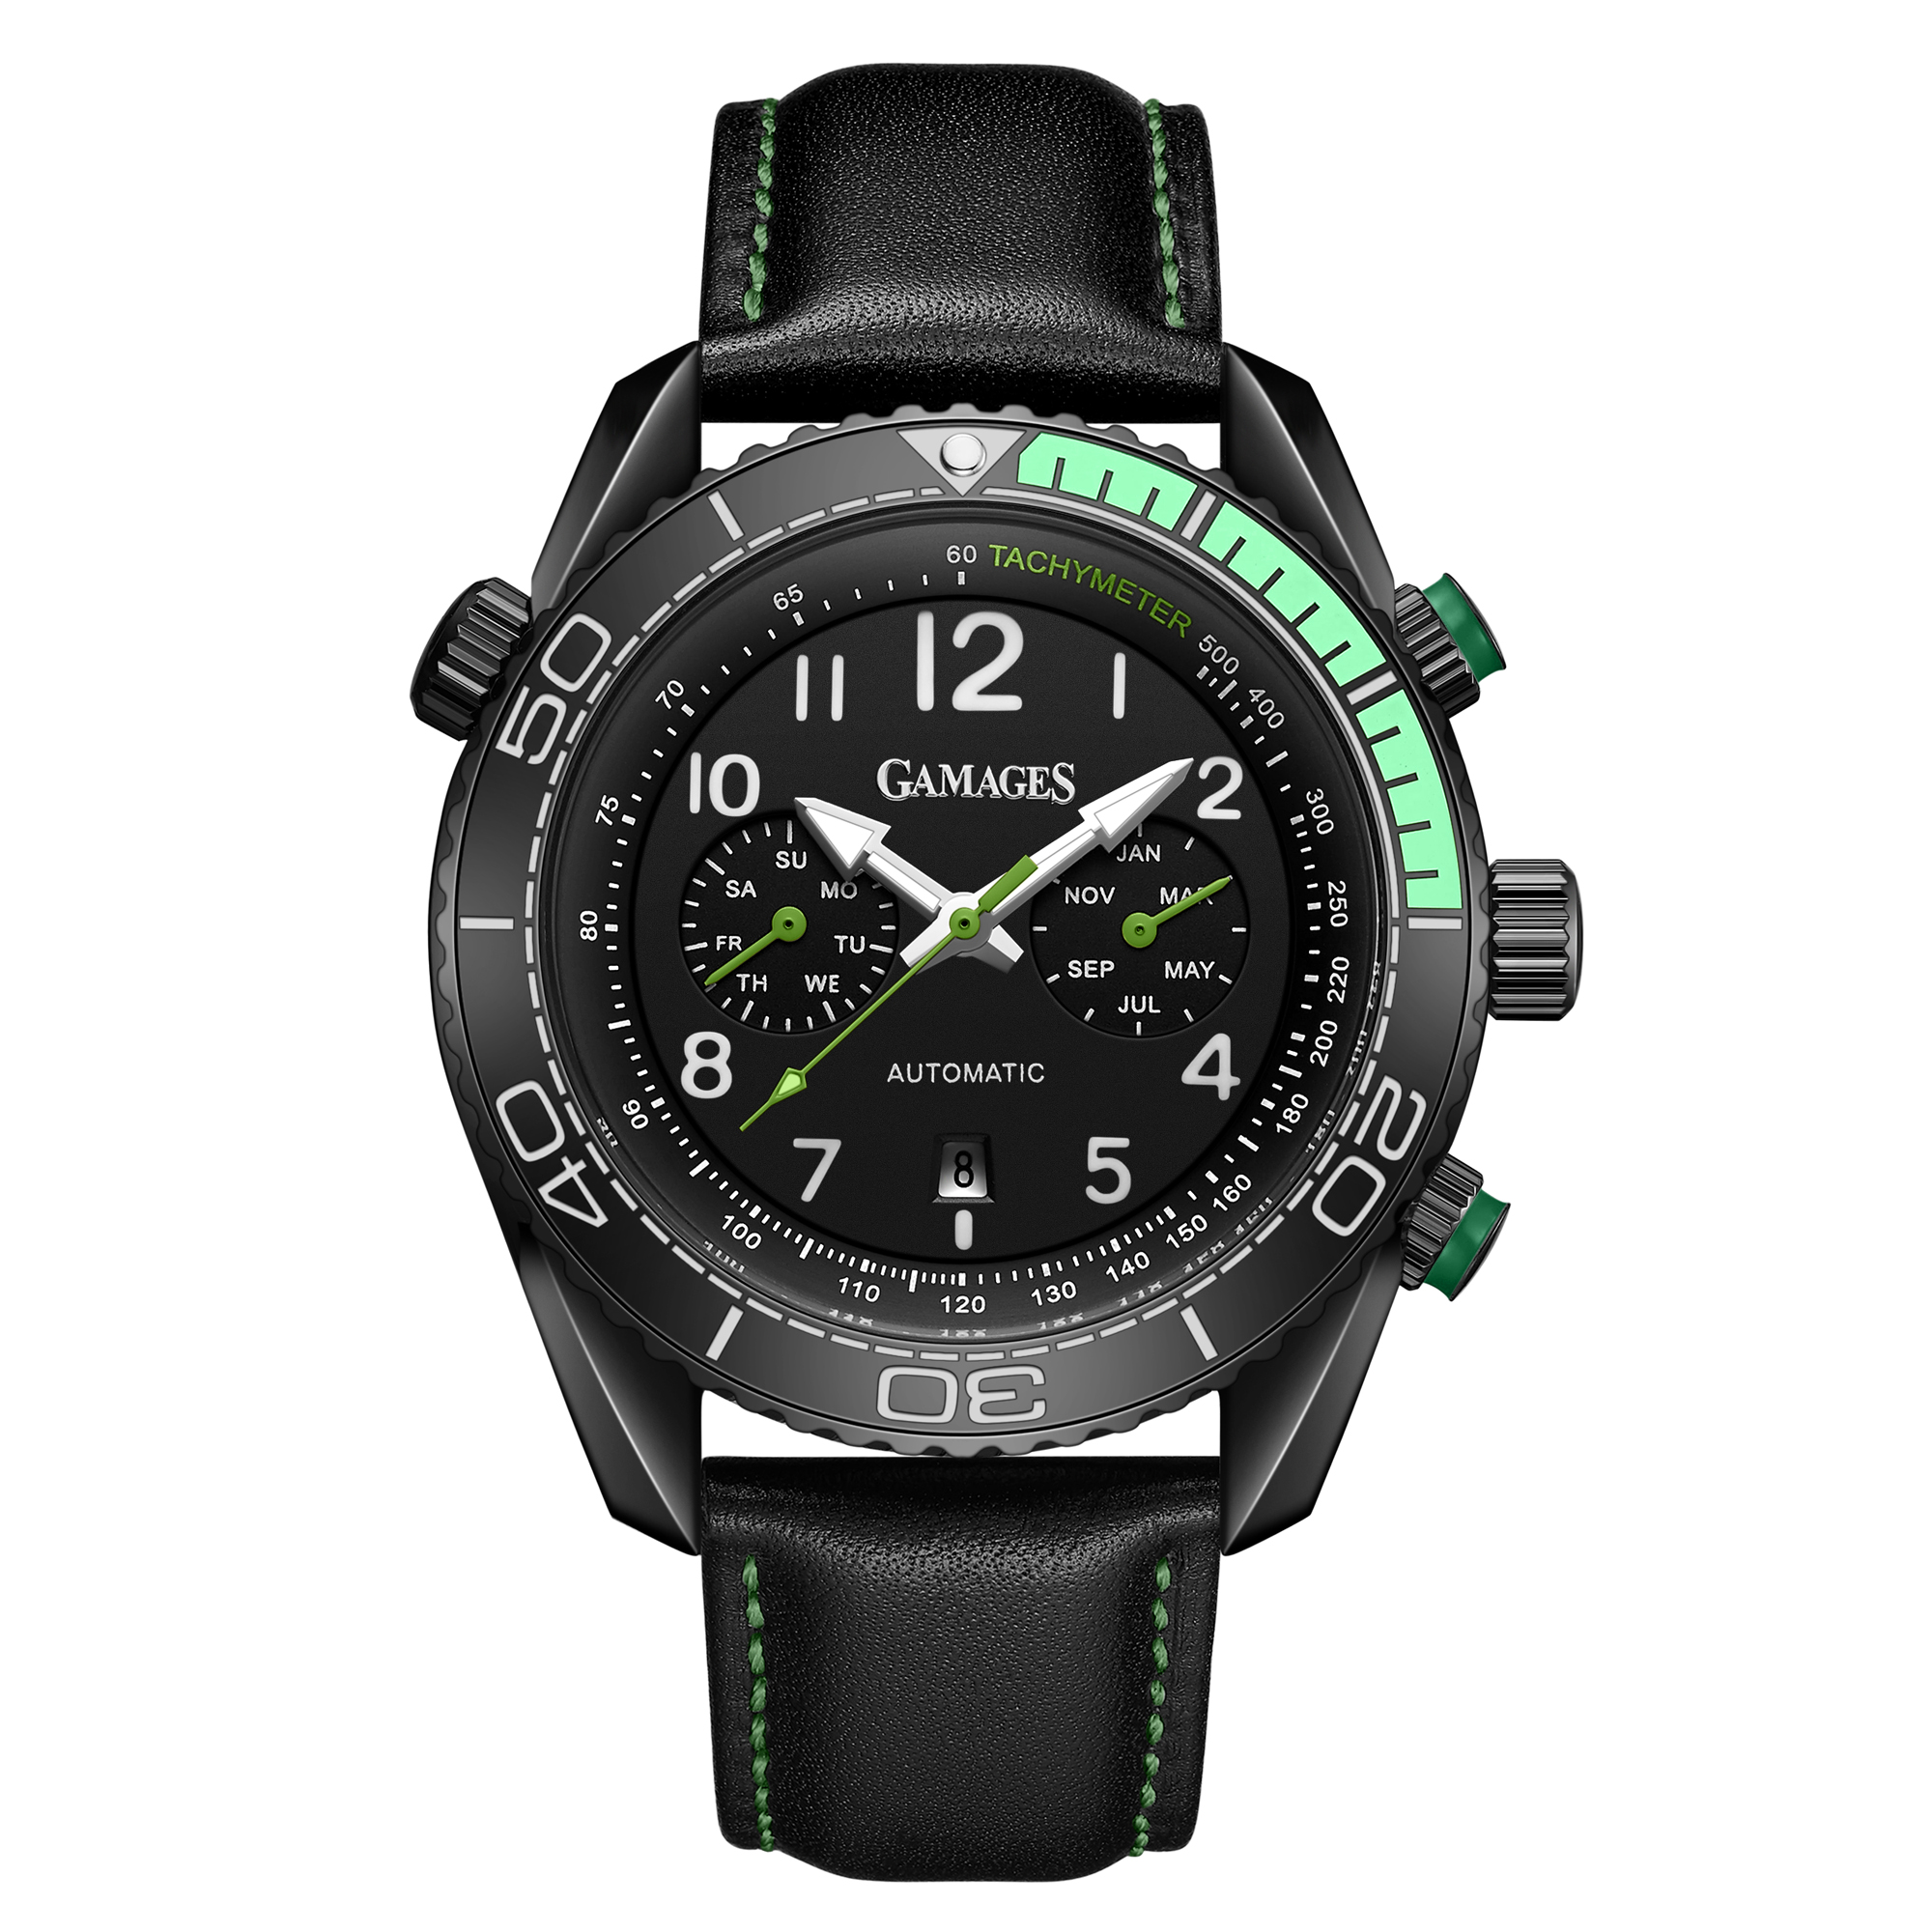 Limited Edition Hand Assembled GAMAGES Supreme Automatic Green – 5 Year Warranty & Free Delivery - Image 3 of 8